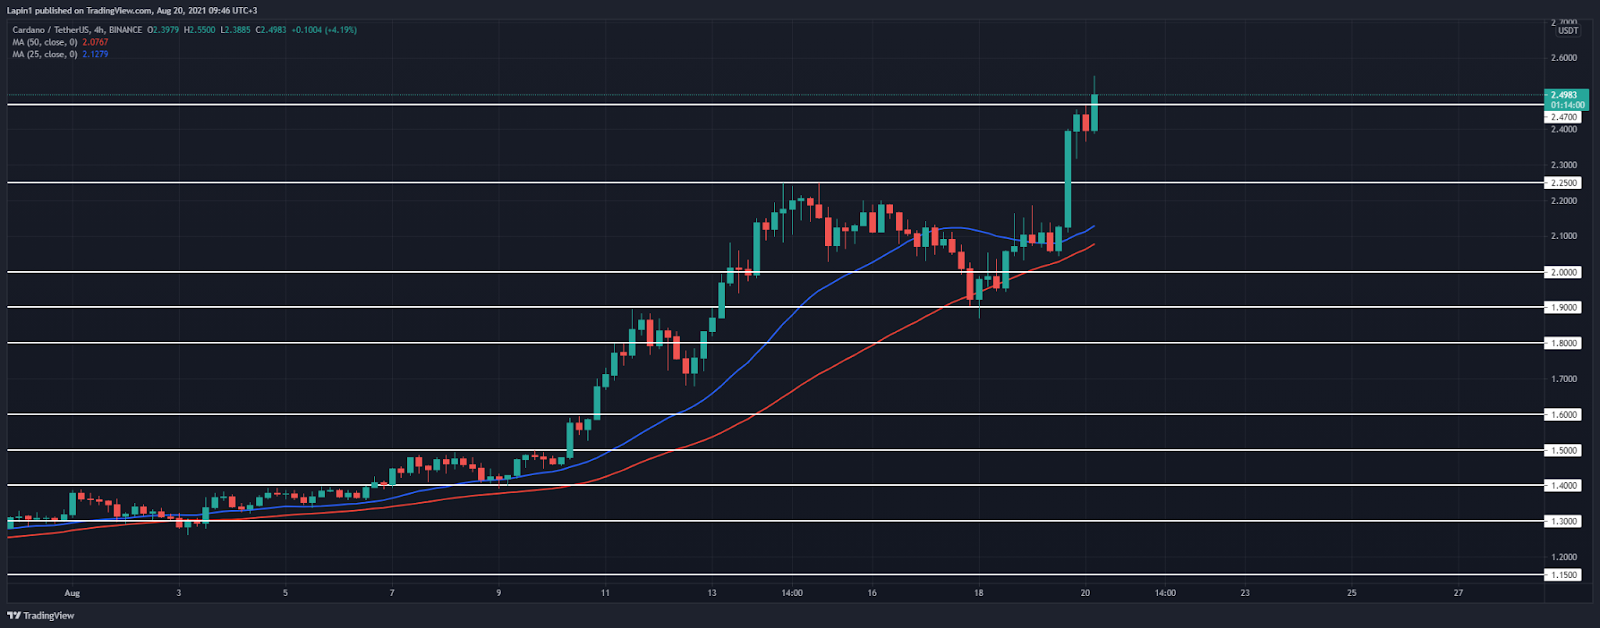 Cardano Price Analysis: ADA spikes above $2.47 all-time high, set for a further increase?